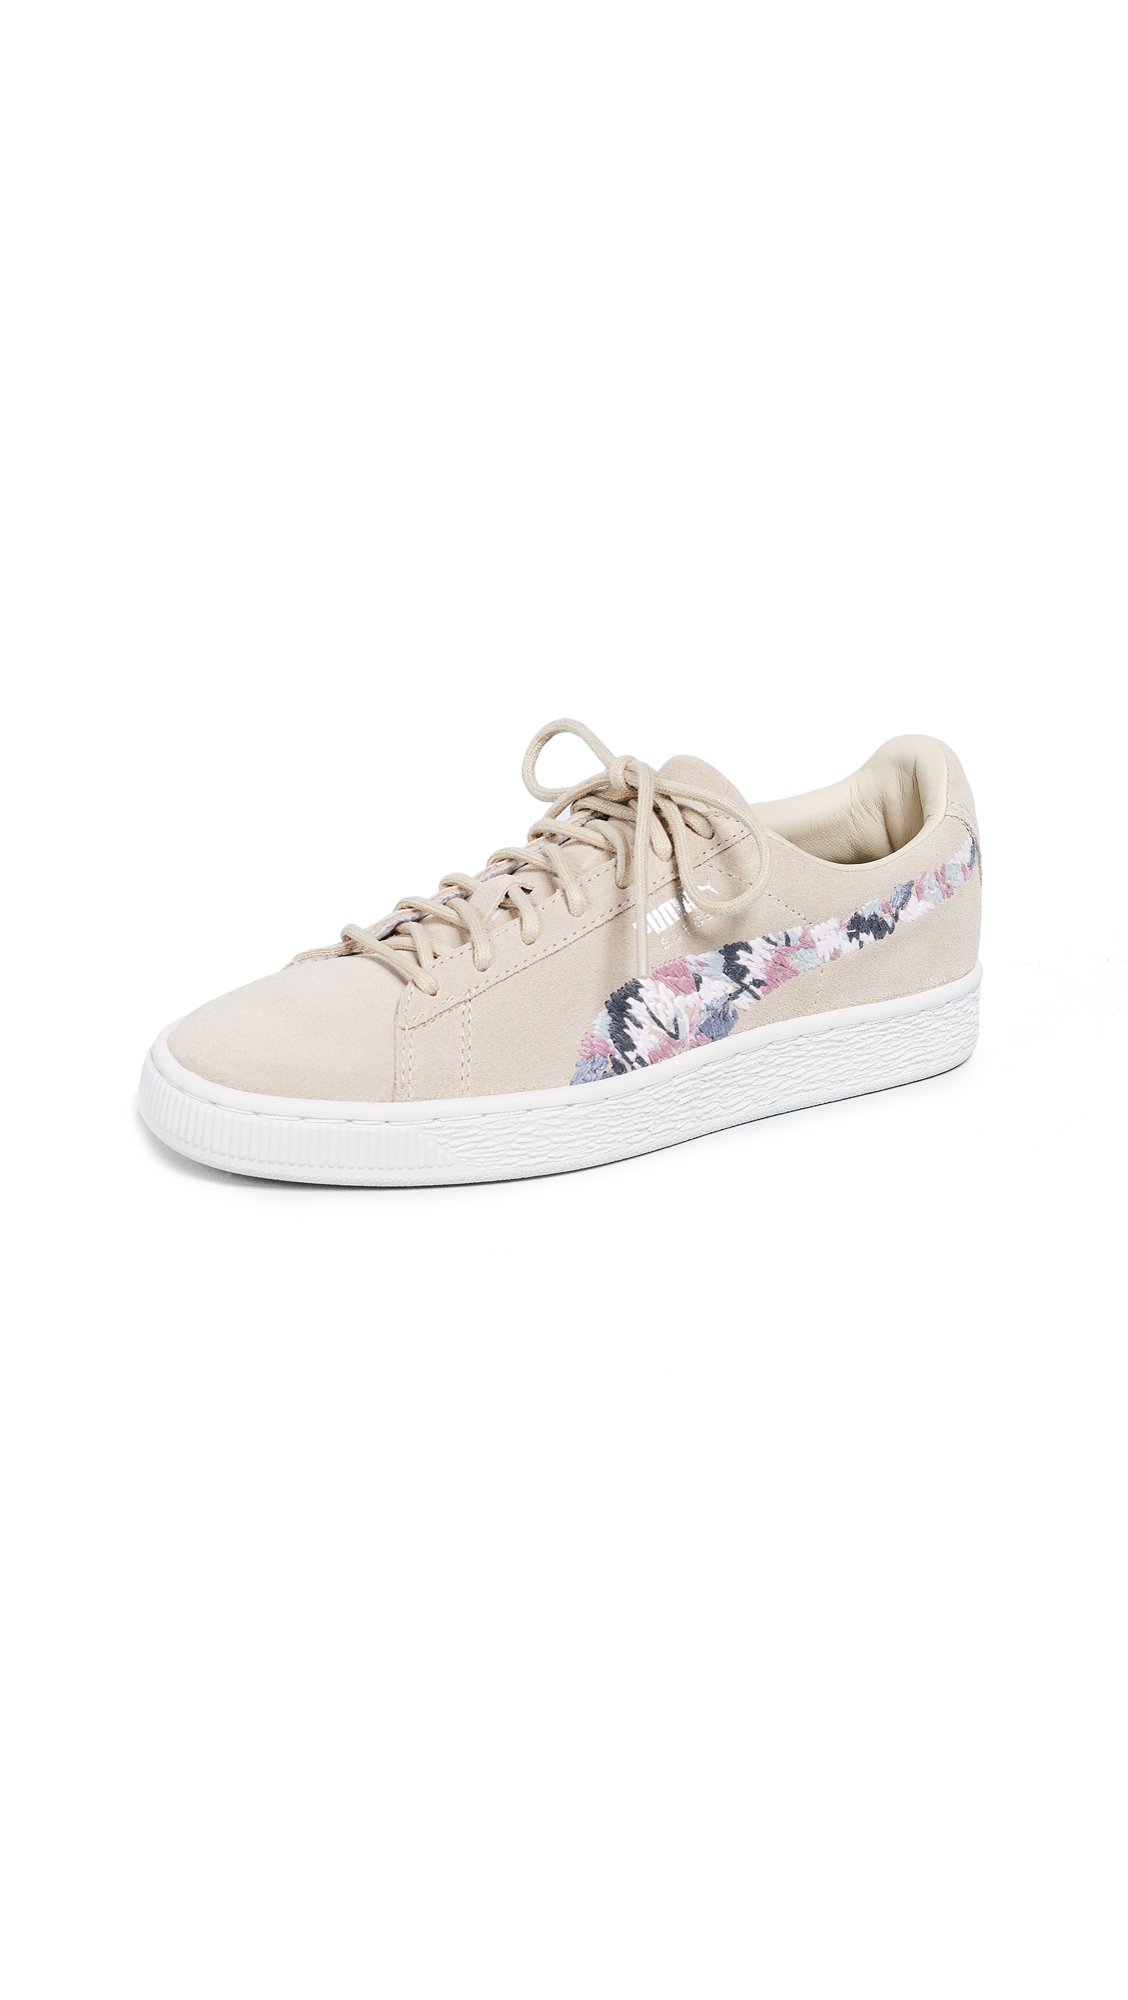 SUEDE SUNFADE STITCH SNEAKERS